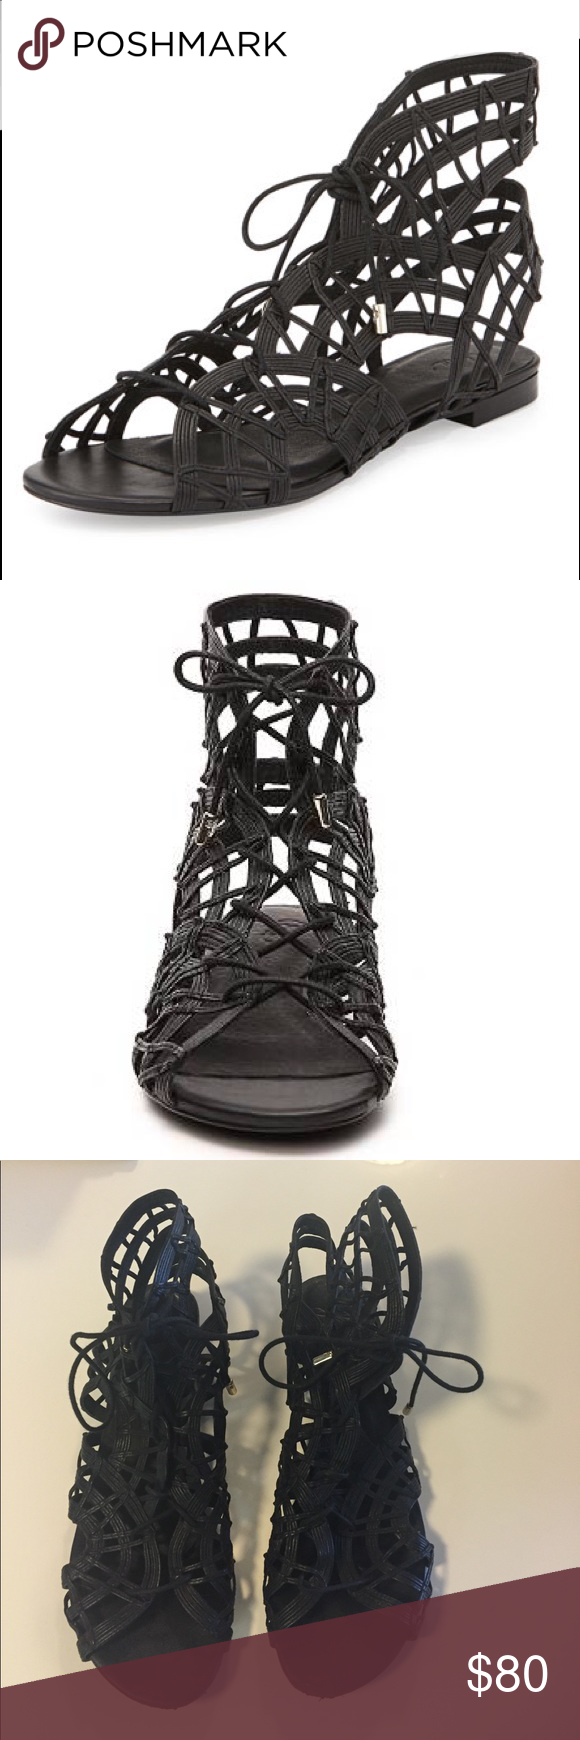 Women's Joie Renee Gladiator Lace-Up Sandal Brand: Joie                                                                              Heel: 0.50 Inches.                                                                  Size: 8.5.                                                                                Material: Leather                                                                  Toe Shape: Peep-Toe. Slightly worn; minor damage at the toe, some discolouration on the soles. Joie Shoes…